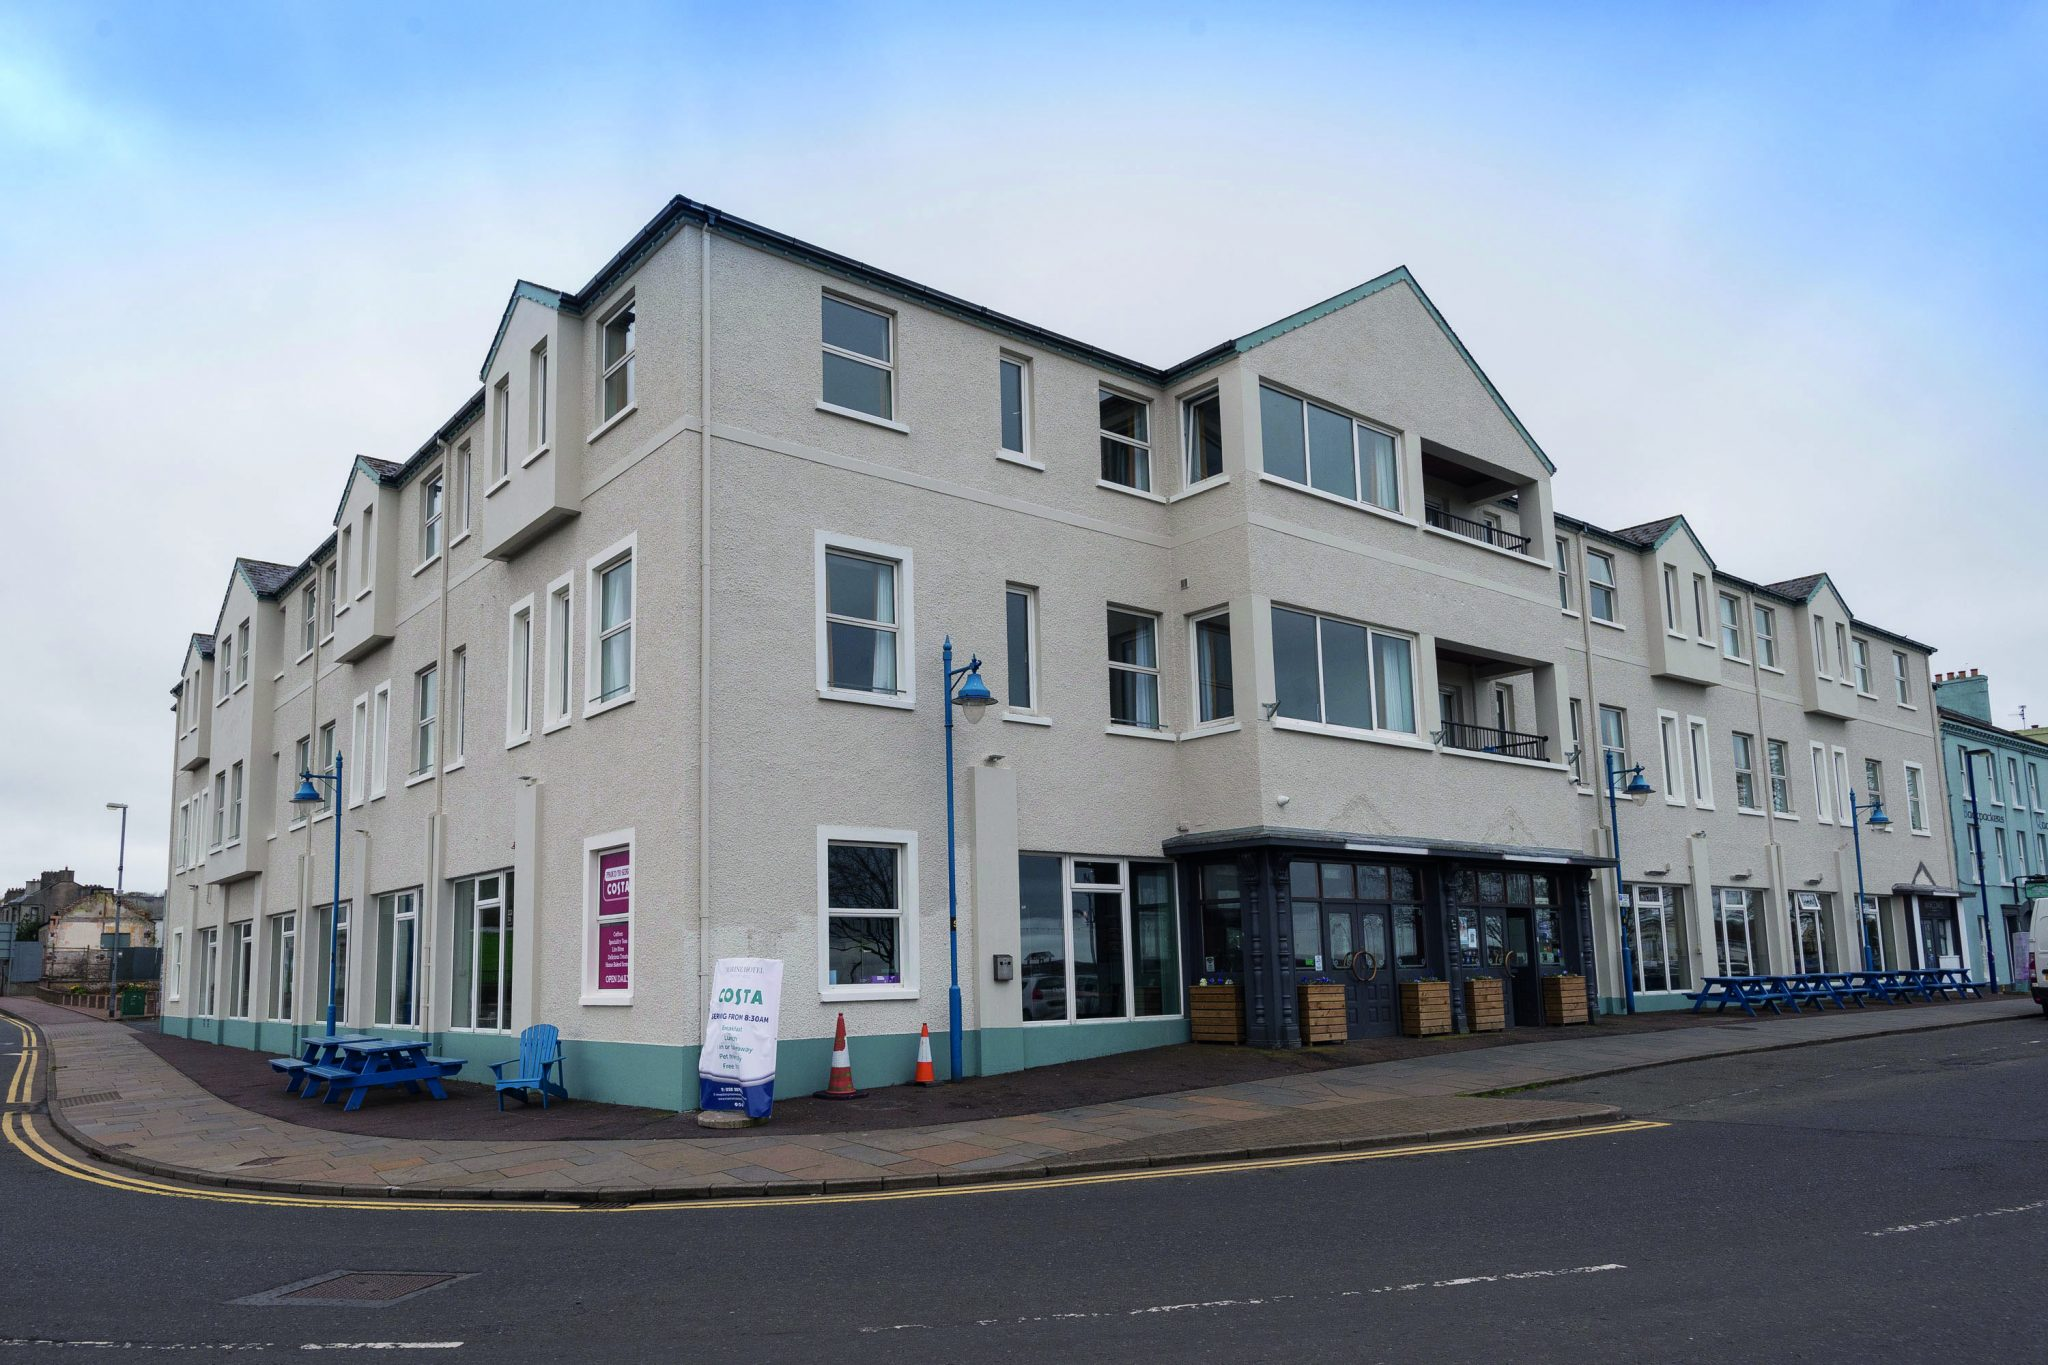 Plush new look for Ballycastle's Marine